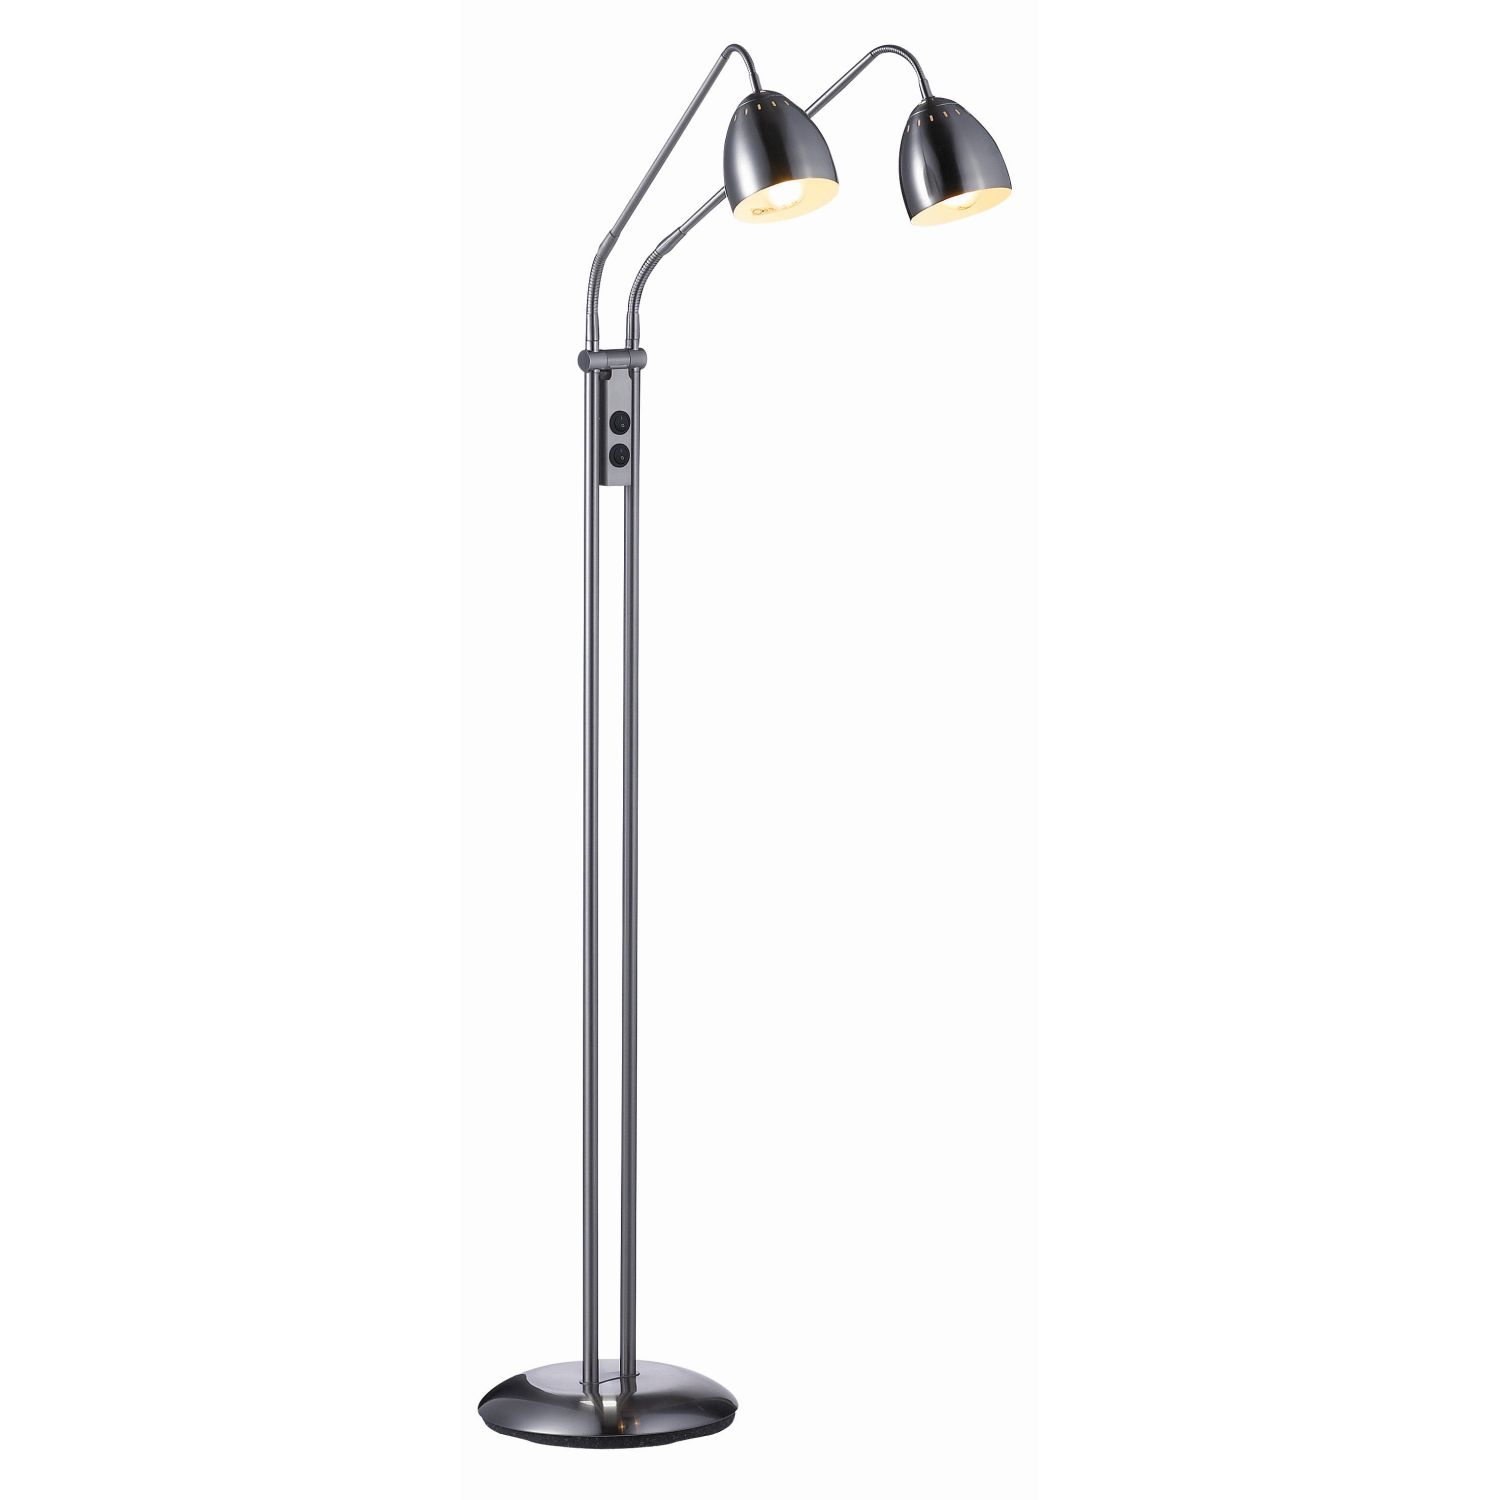 Modern Floor Lamp Standing Reading Light Black Chrome